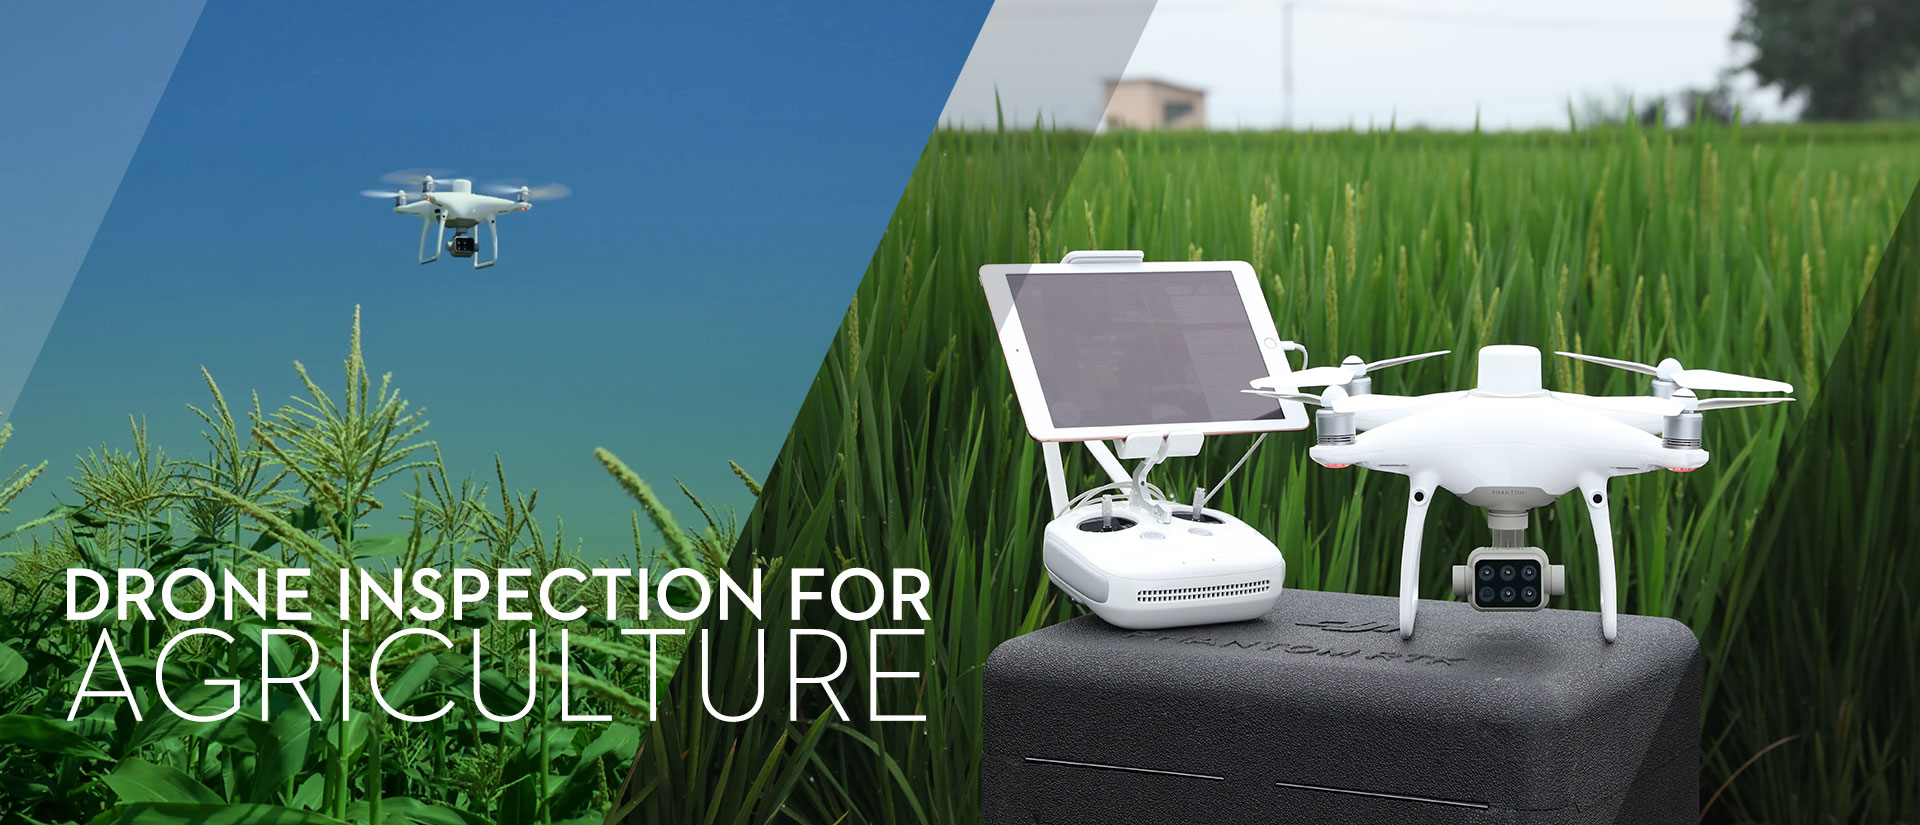 Blog-Drone-Inspection-Agriculture